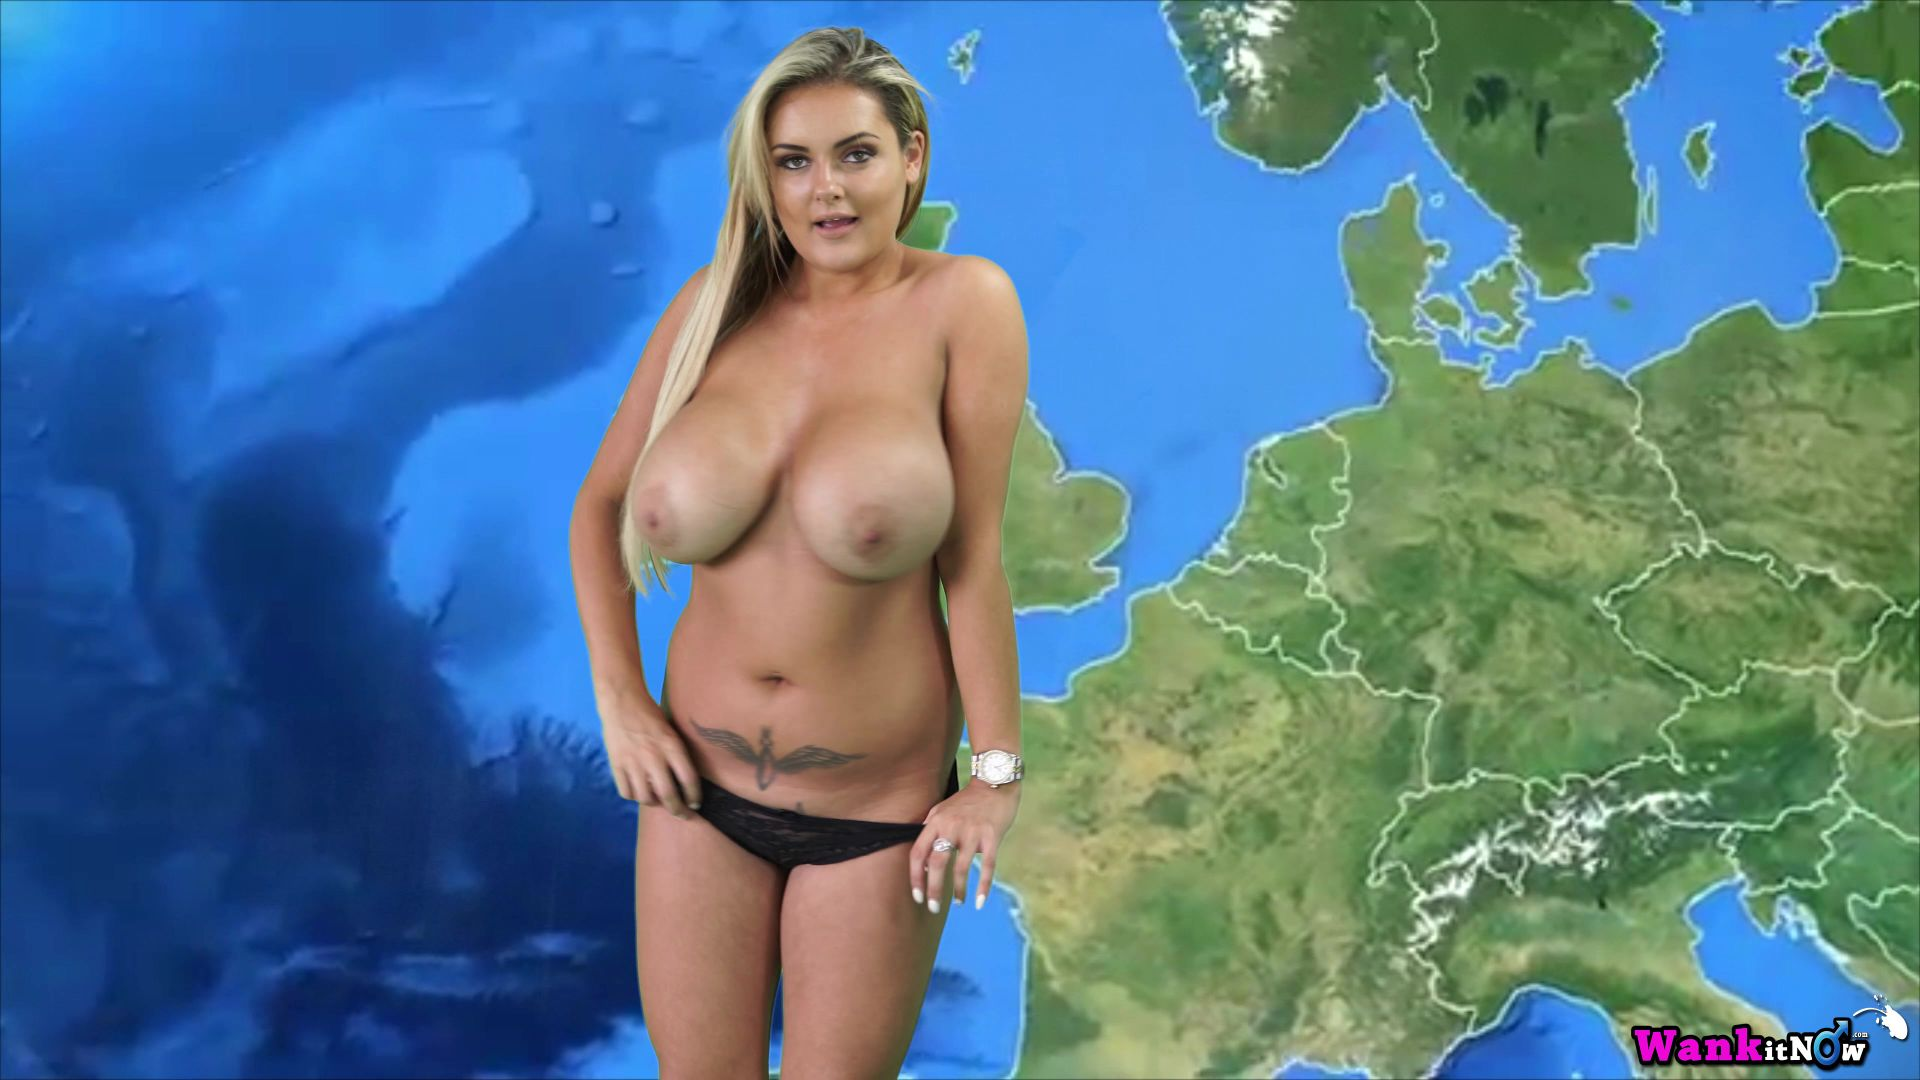 katie t naughty weather girl sexy albums wank it now